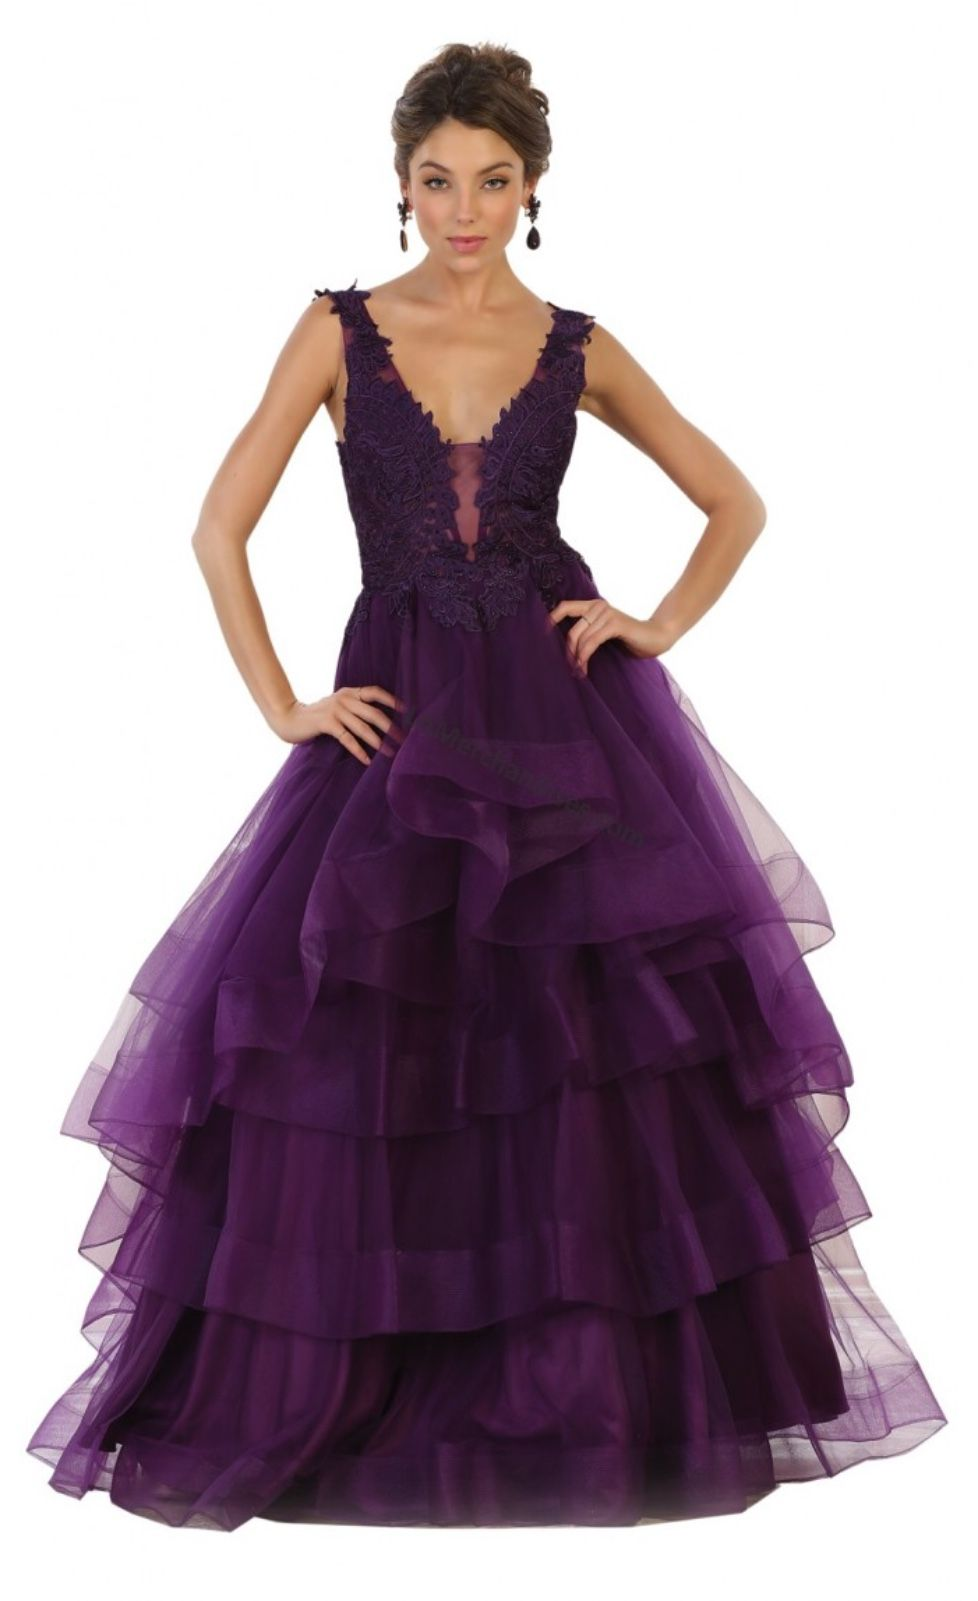 Ballgowns | Prom gowns 2018 | Pinterest | Bridal stores and Wisconsin